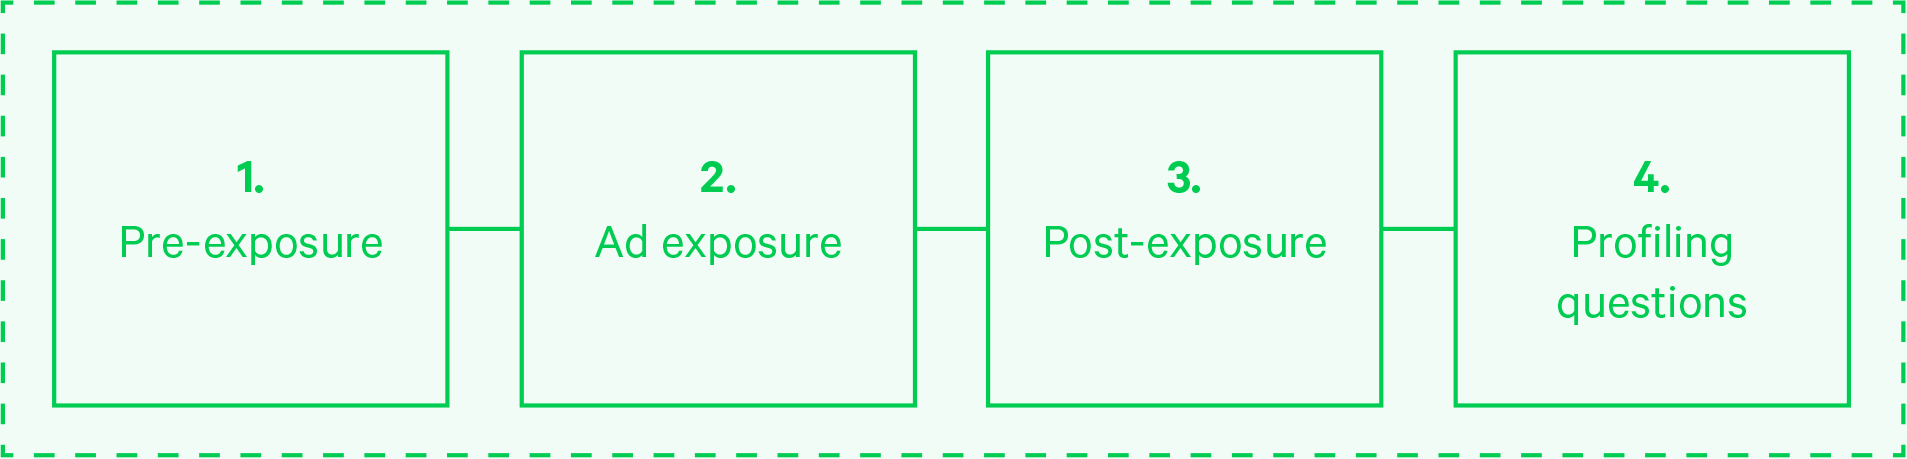 4 sections of a typical copy test: Pre-exposure, ad exposure, post-exposure, and profiling questions.